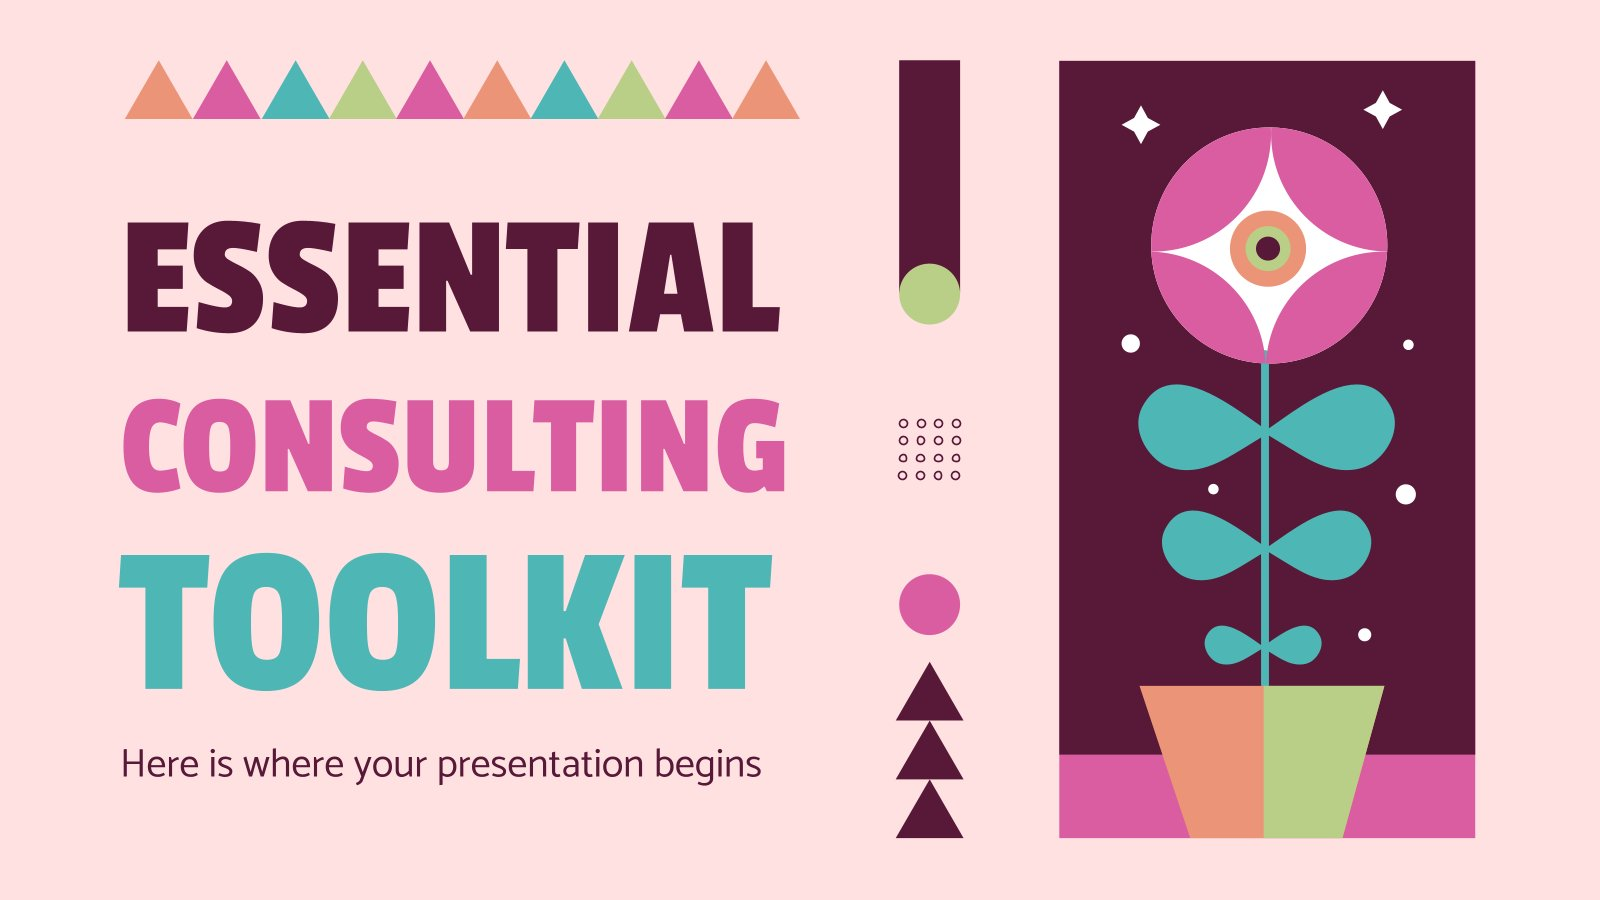 Essential Consulting Toolkit presentation template